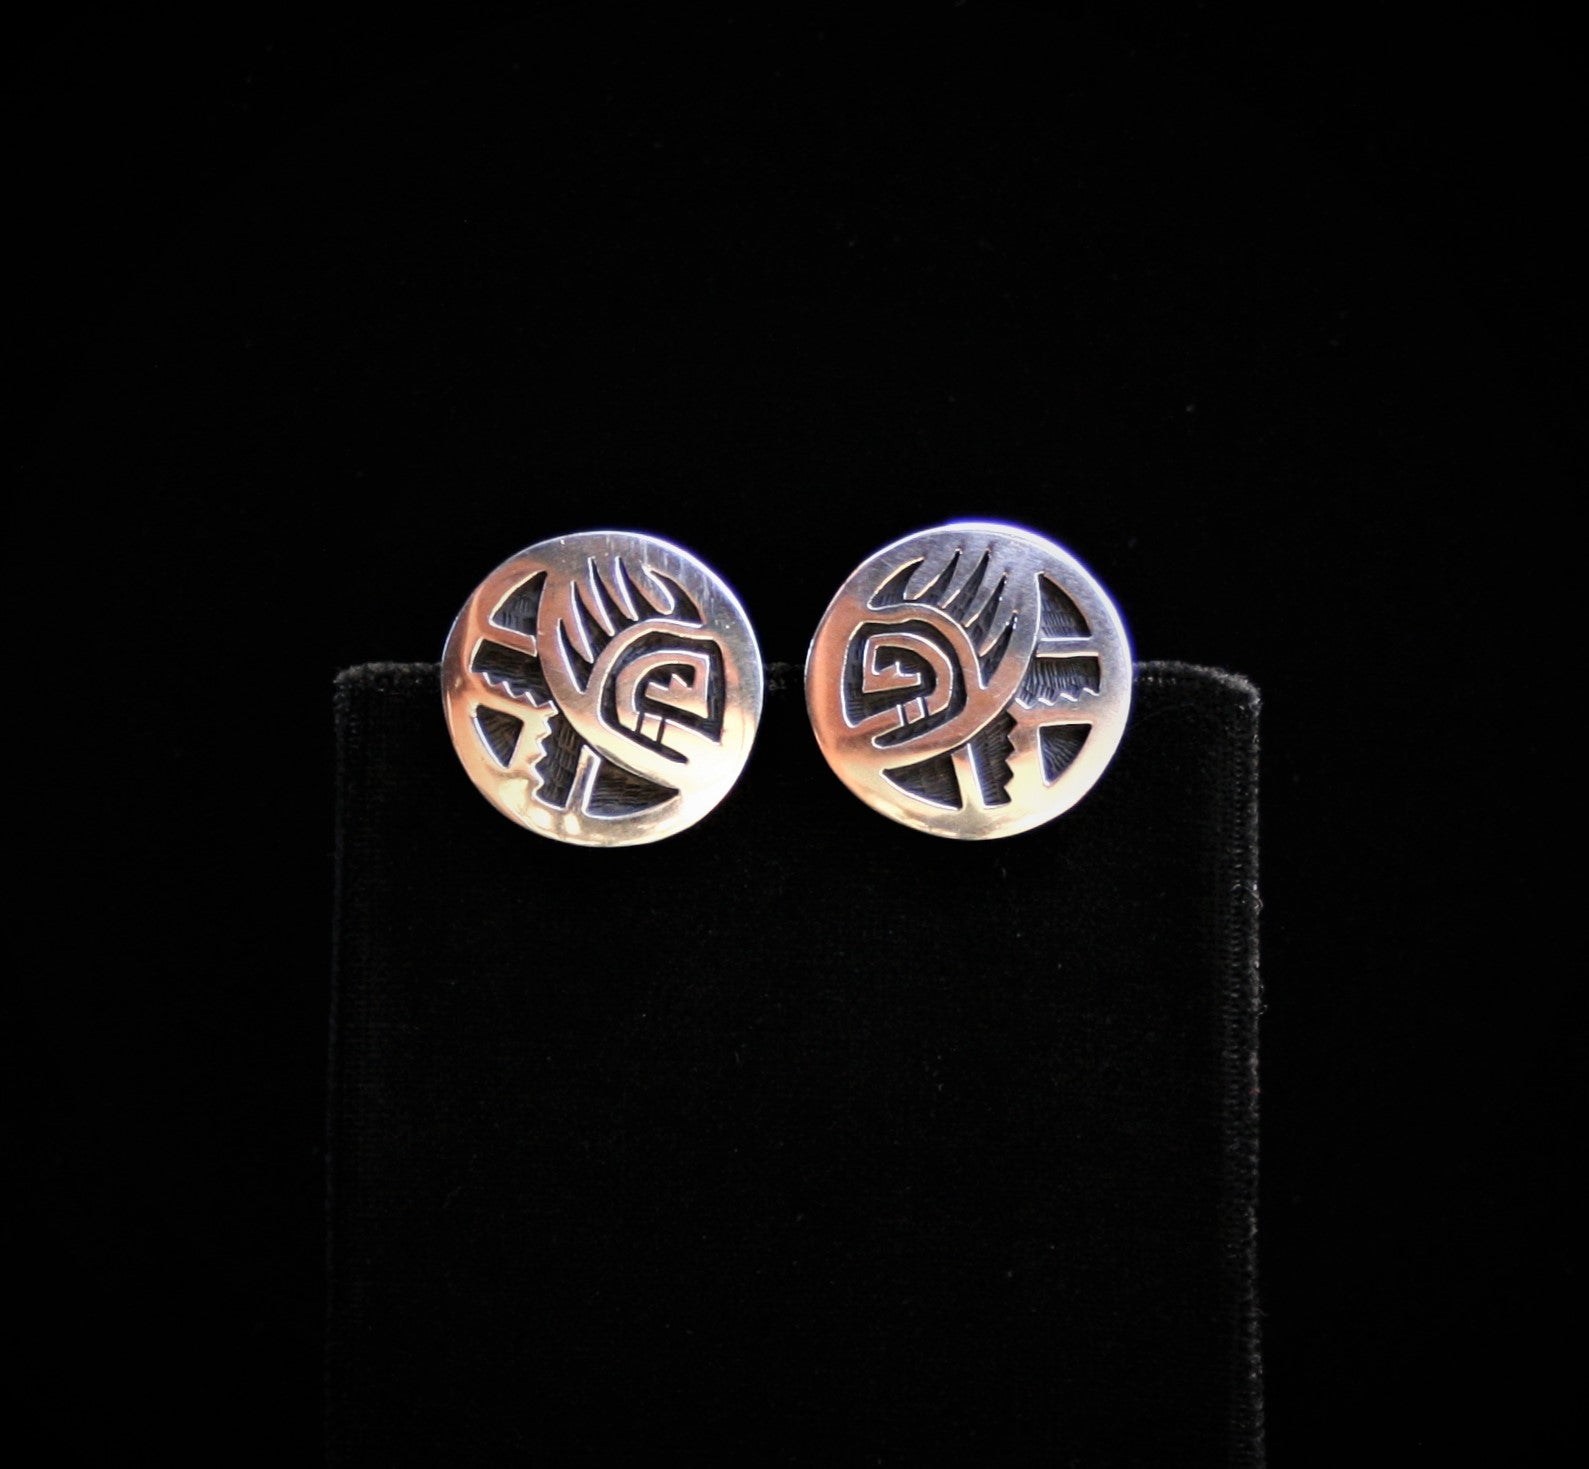 Hopi Bear Paw & Cloud Cuff Links 3/4″ Round Glossy Silver